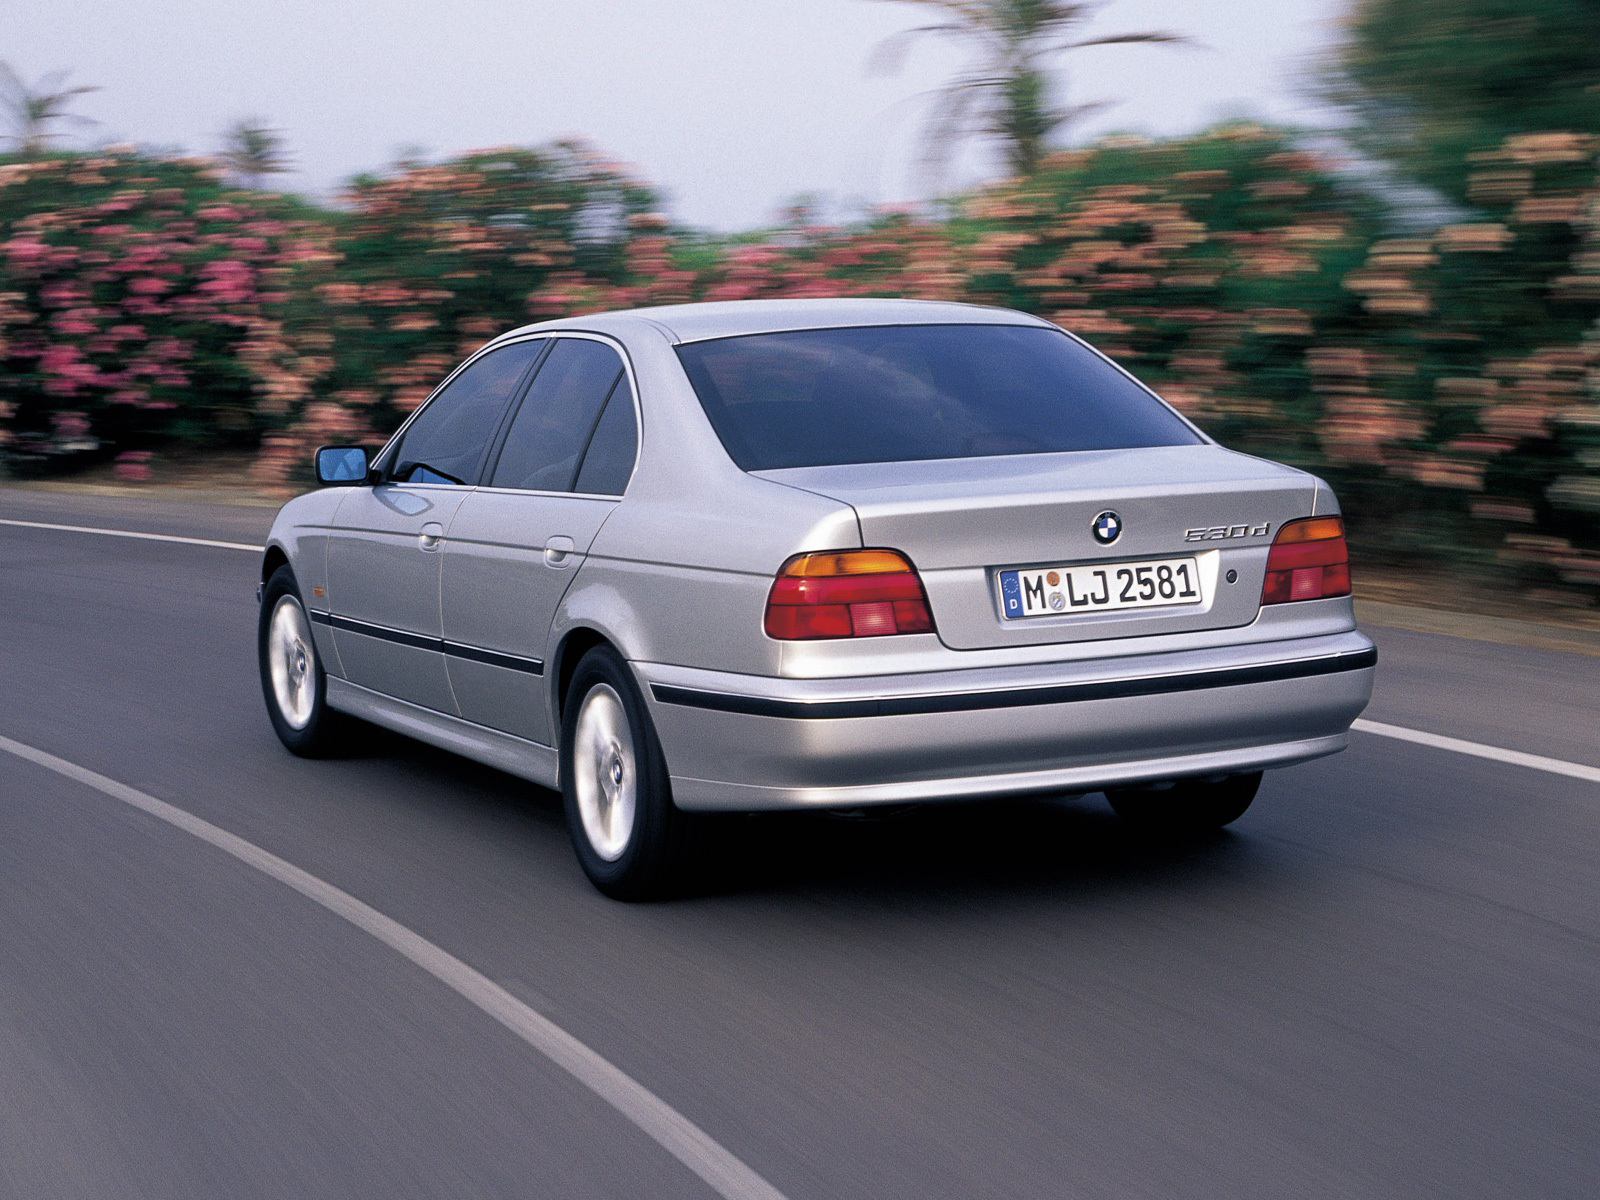 BMW 5 series 530d 2000 photo - 1